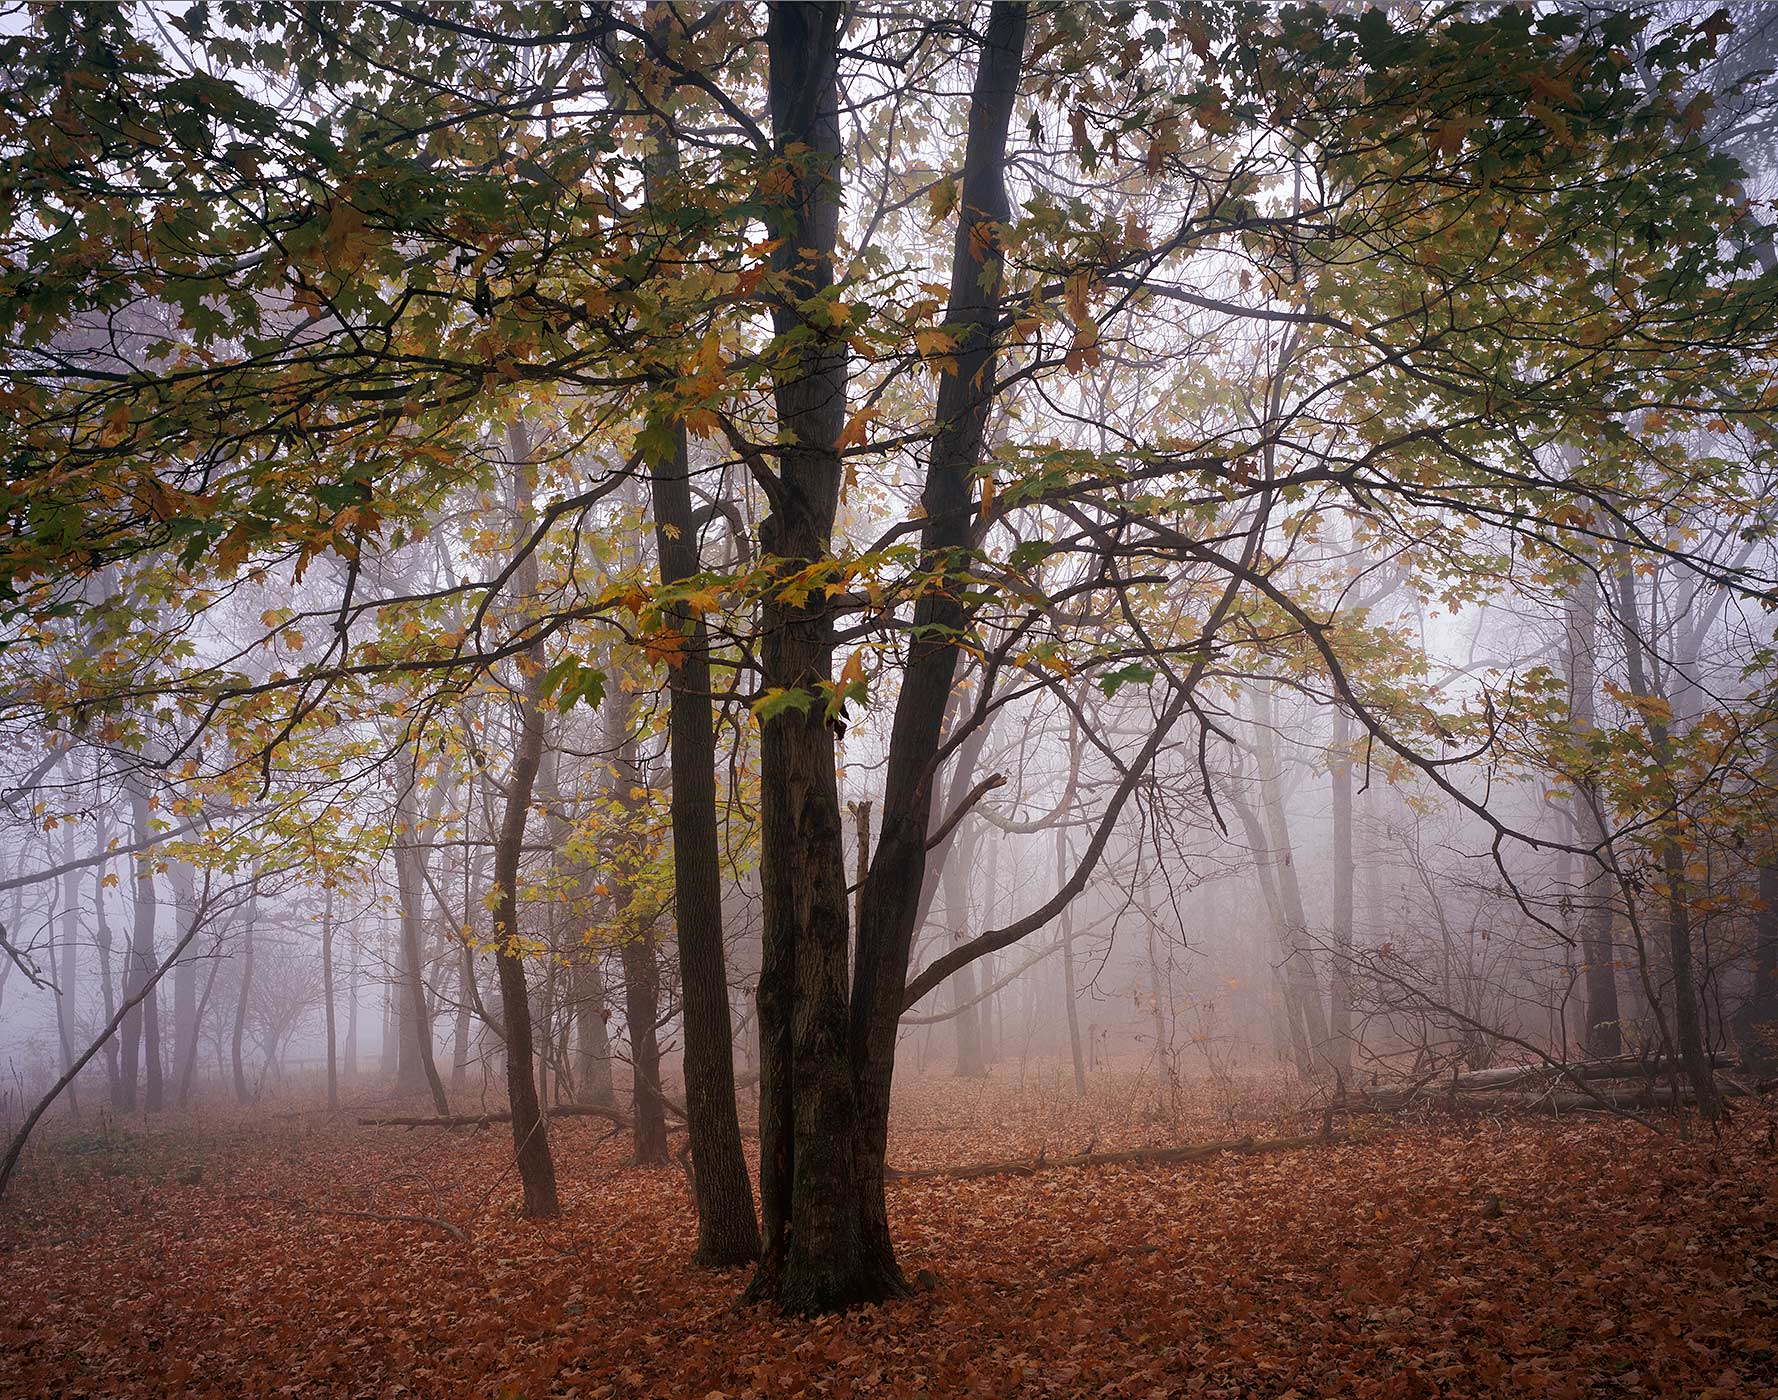 905 Maples in Fog, Shenandoah National Park, Virginia